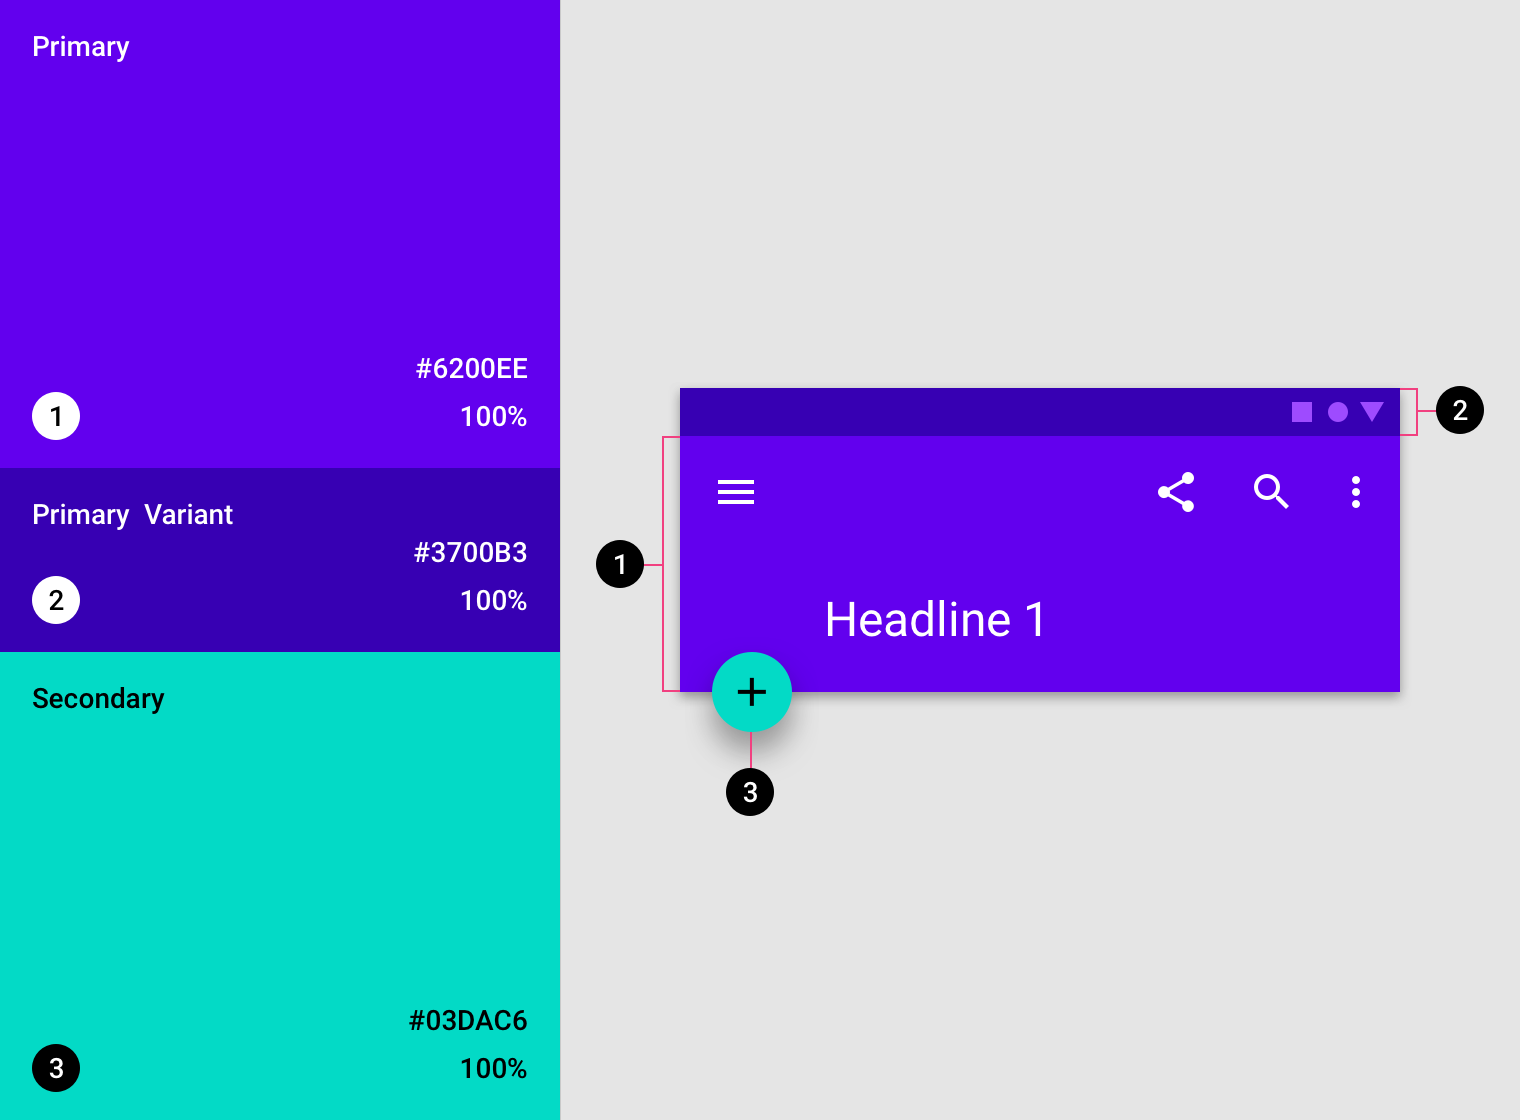 Implementing your theme - Material Design